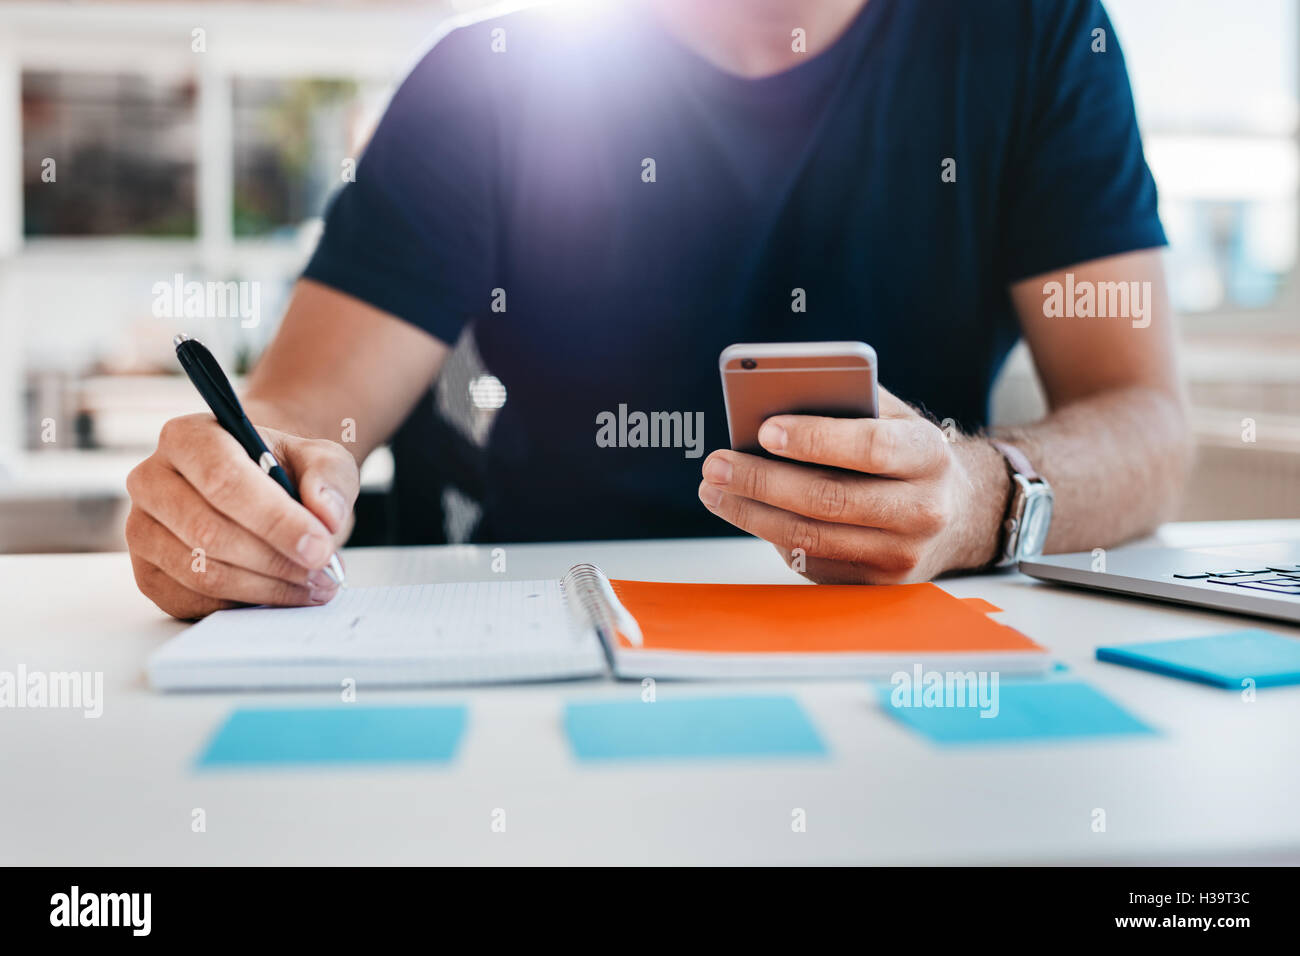 Close up shot of a man taking down note in a personal organizer with mobile phone in other hand. Young man hands - Stock Image